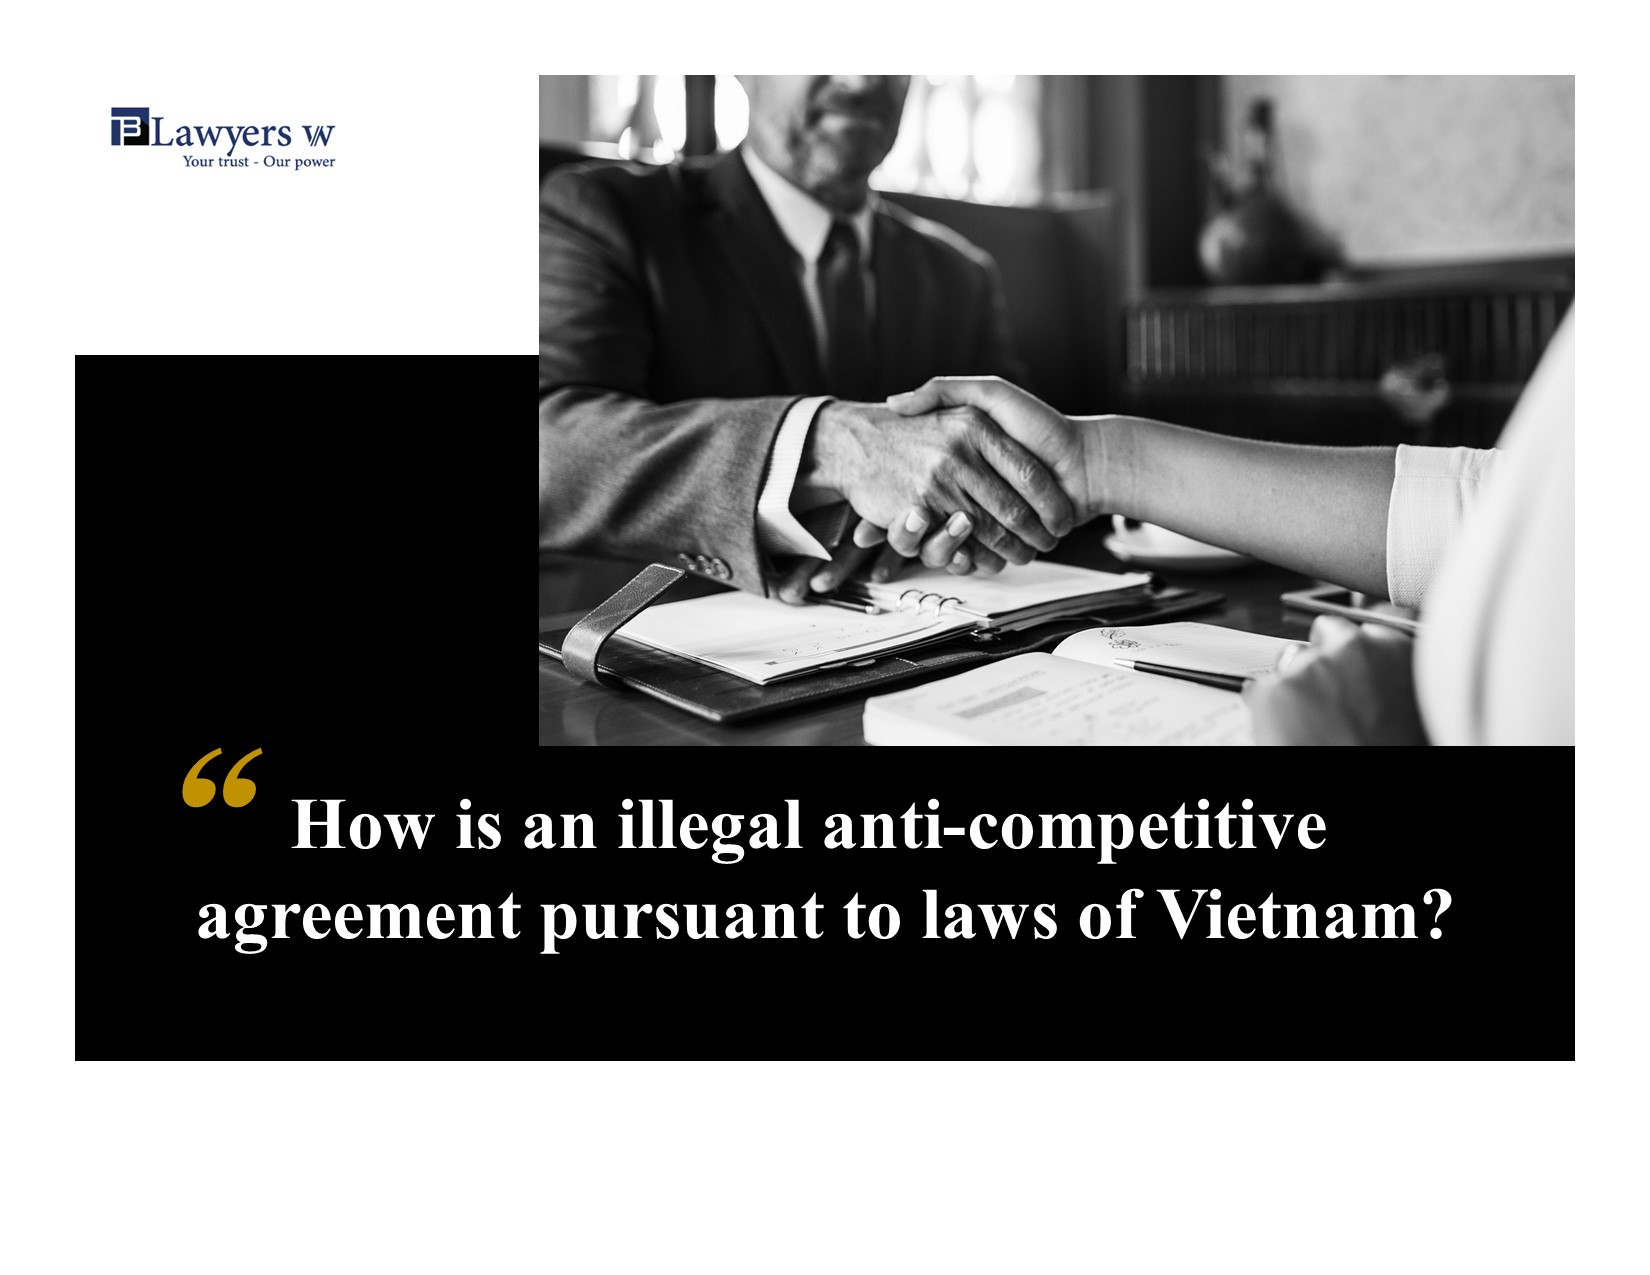 How is an illegal anti-agreements pursuant to Vietnam laws